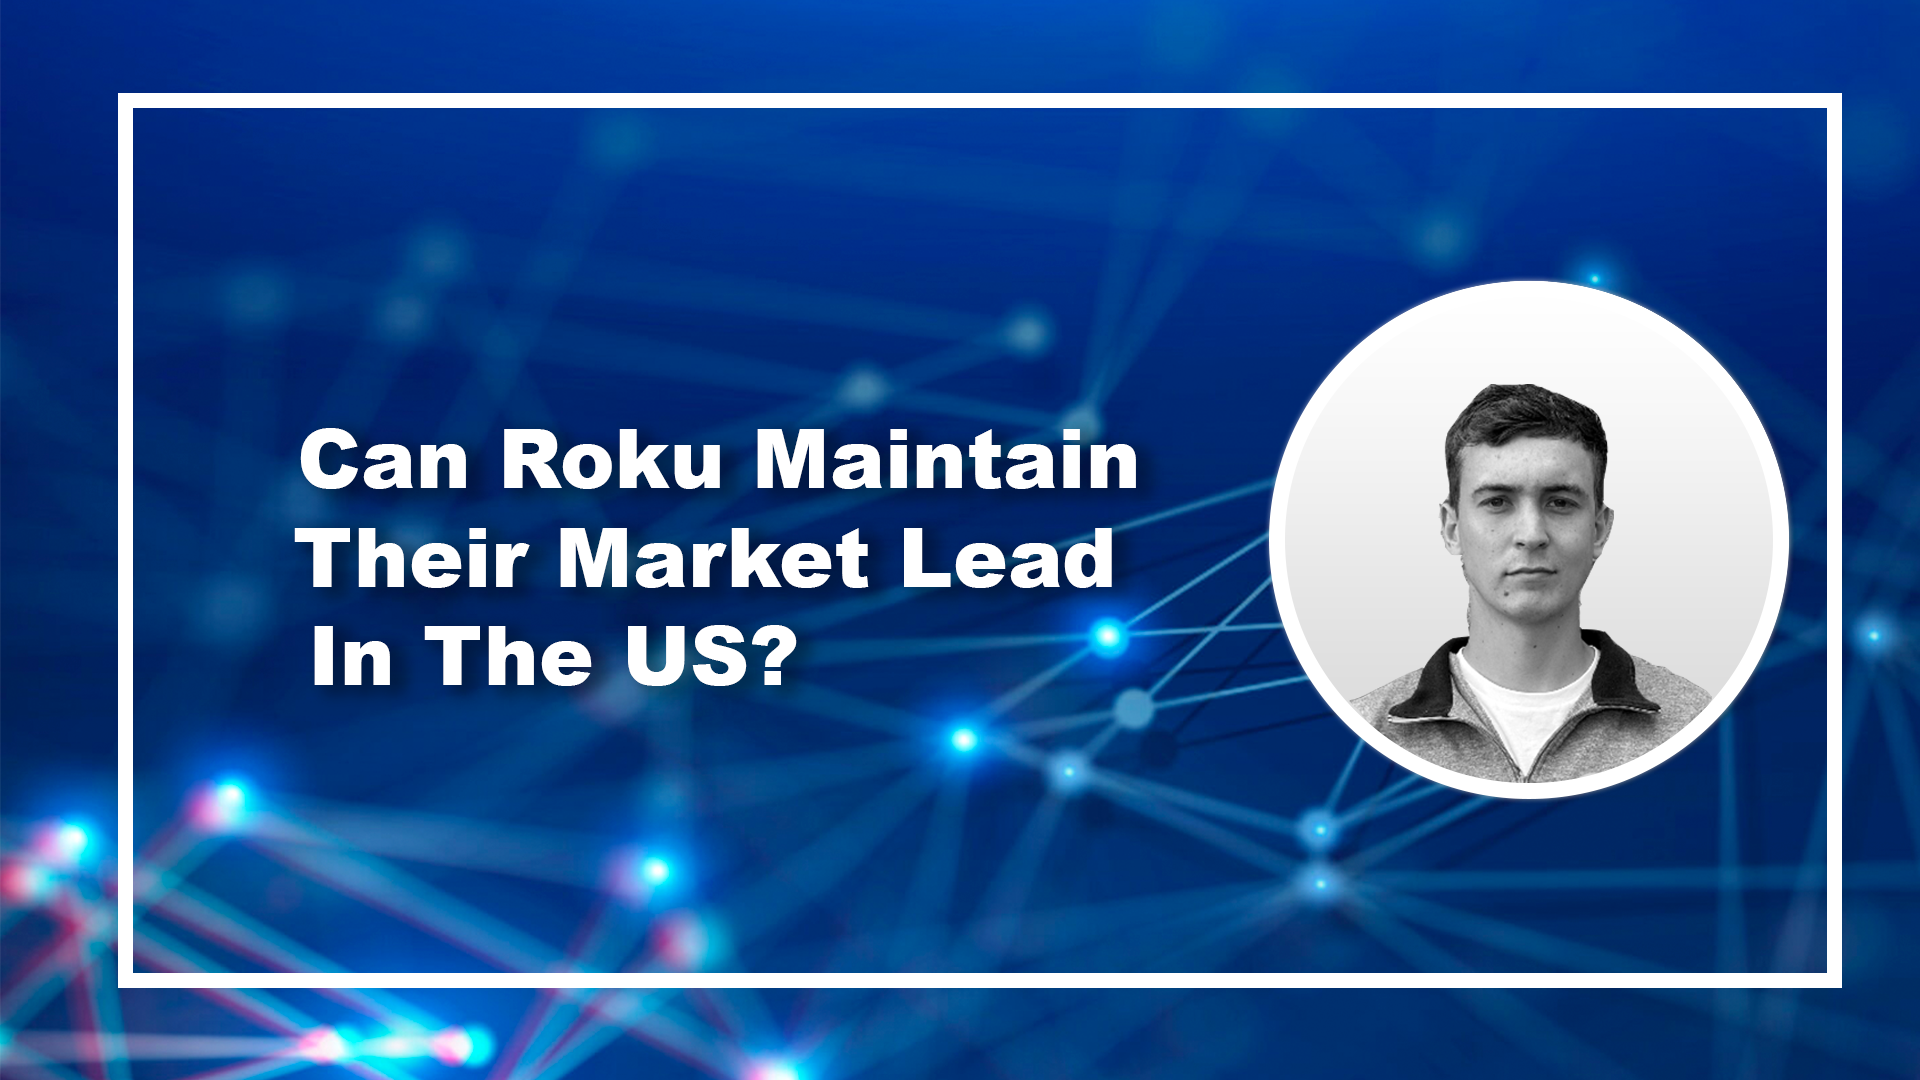 Can Roku Maintain Their Market Lead In The US?